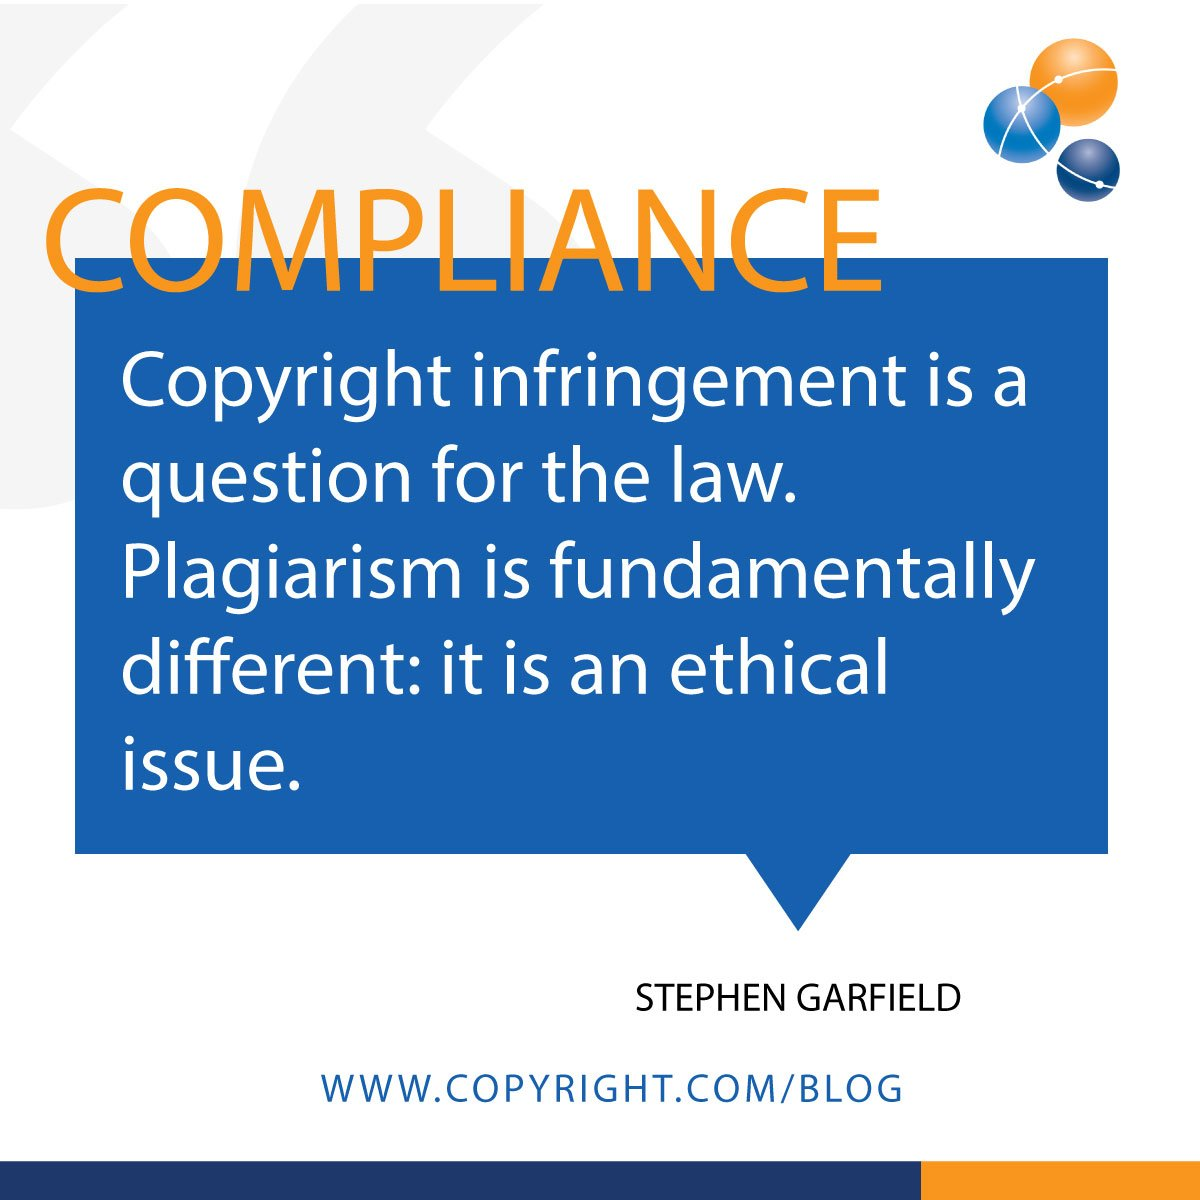 test Twitter Media - A case of #plagiarism may not be infringement – and vice versa. Make sure you understand the differences: Plagiarism vs. #Copyright Infringement https://t.co/5TfoSTNPvp https://t.co/B5PVIidf9S